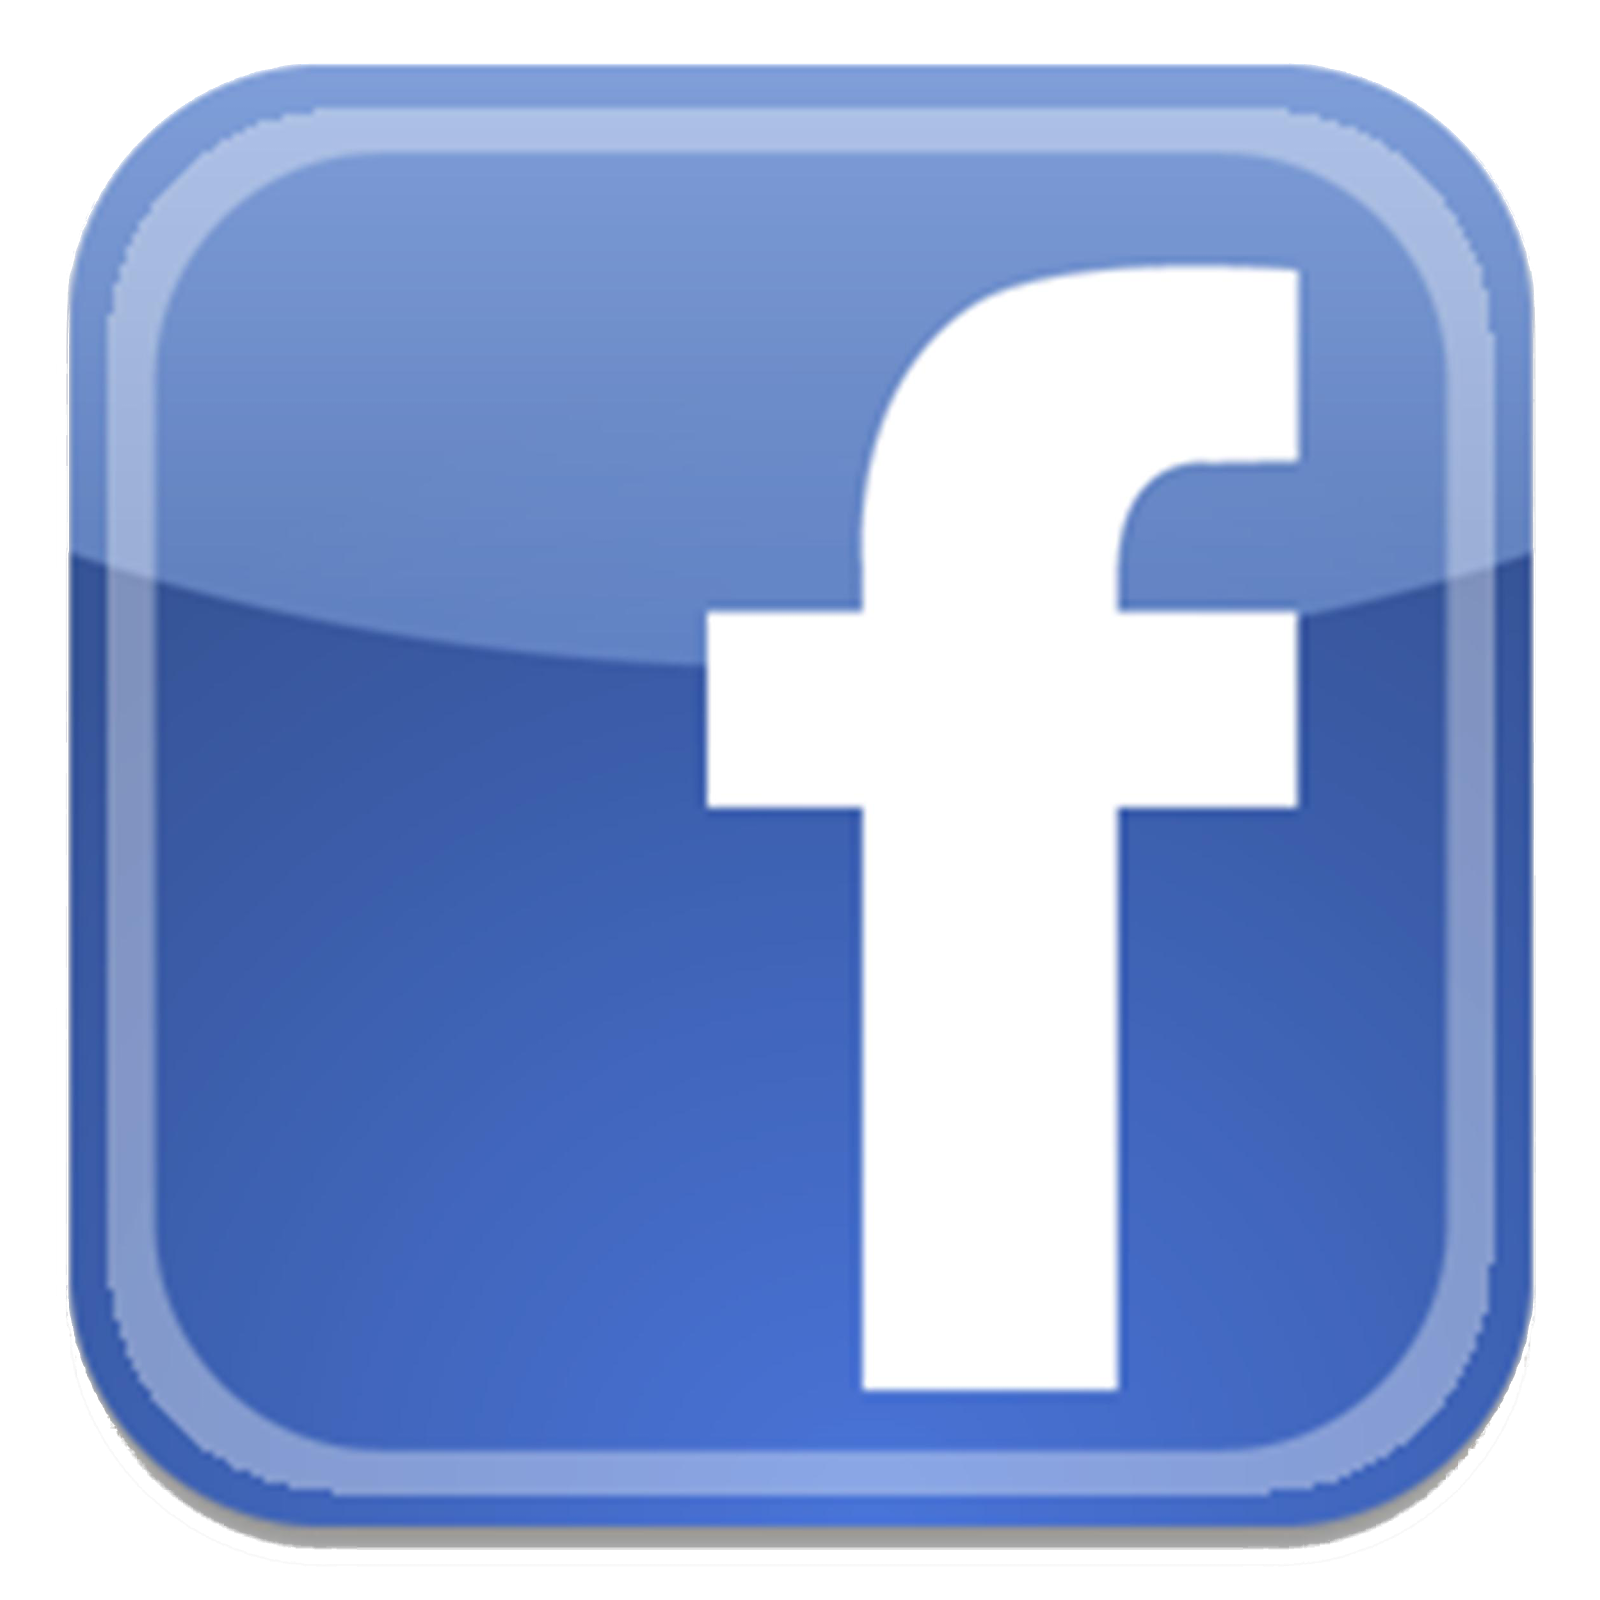 Fb like png. Facebook logo impending education